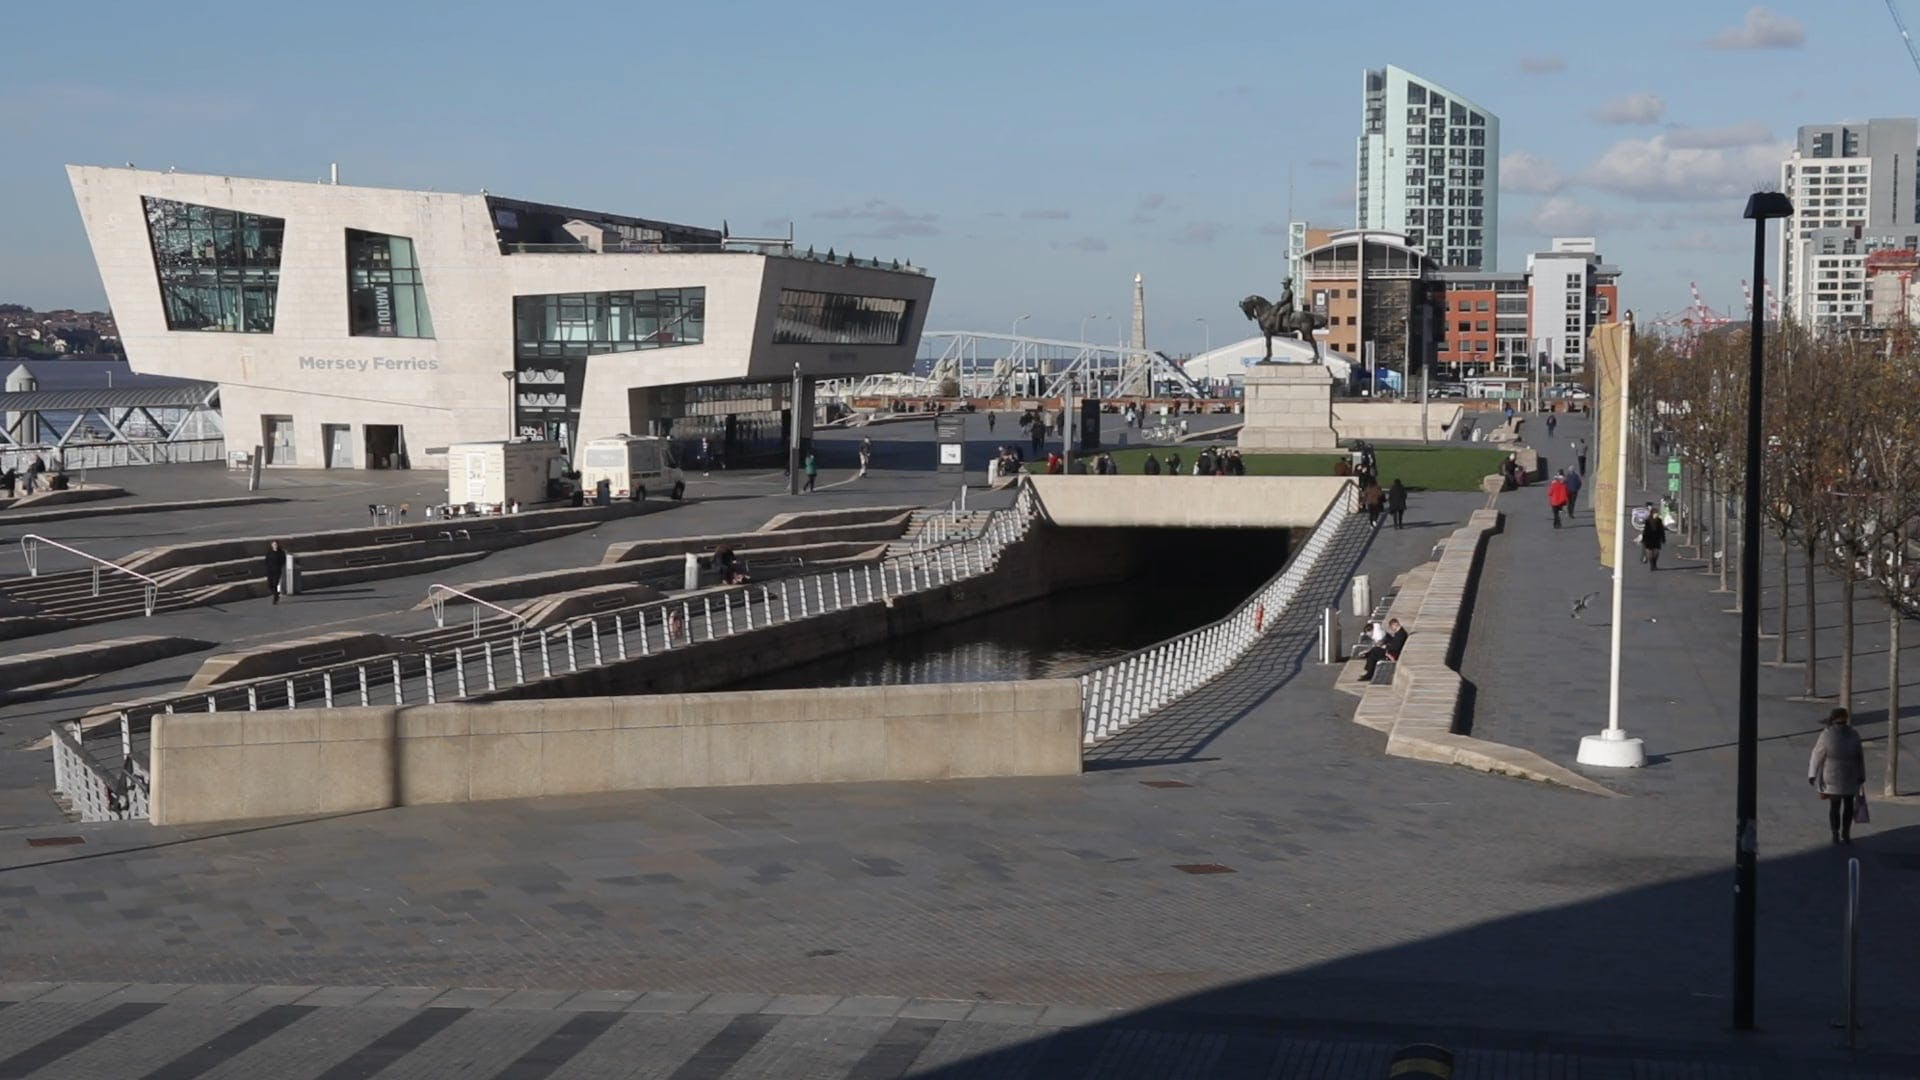 Mersey Ferry Station